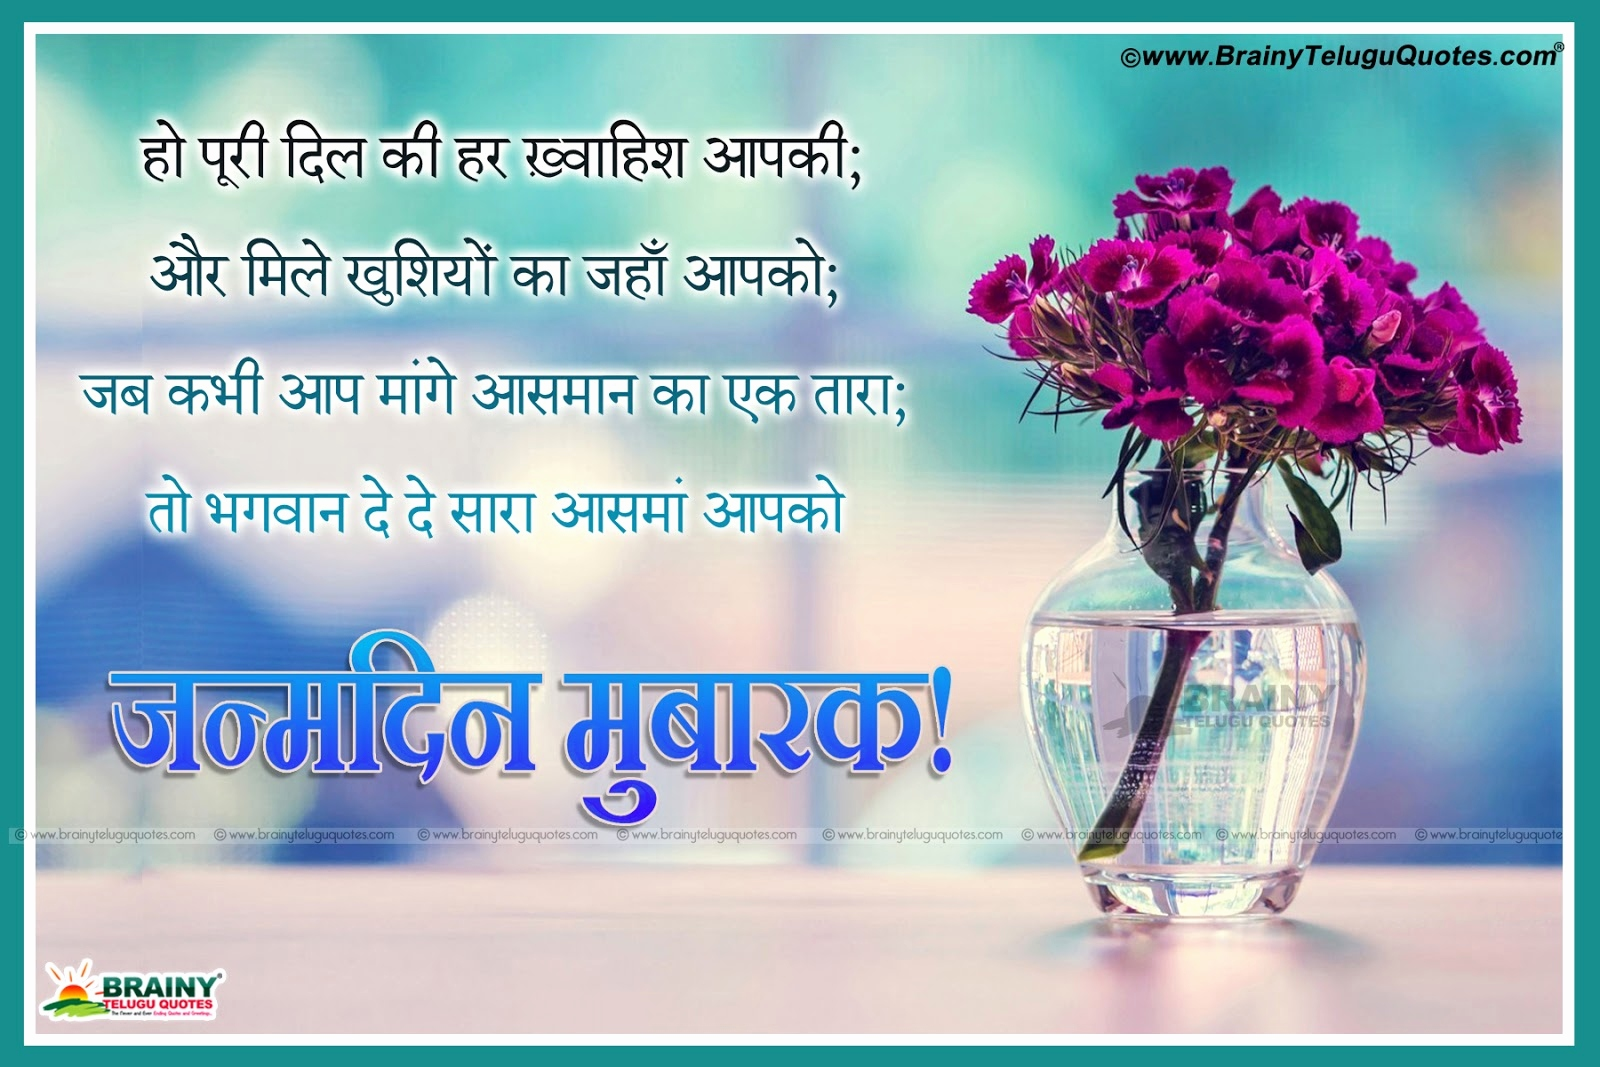 birthday message for best friend in hindi ; happy-birthday-wishes-in-hindi-shayari-for-friend-elegant-heart-touching-birthday-wishes-for-best-friend-in-hindi-of-happy-birthday-wishes-in-hindi-shayari-for-friend